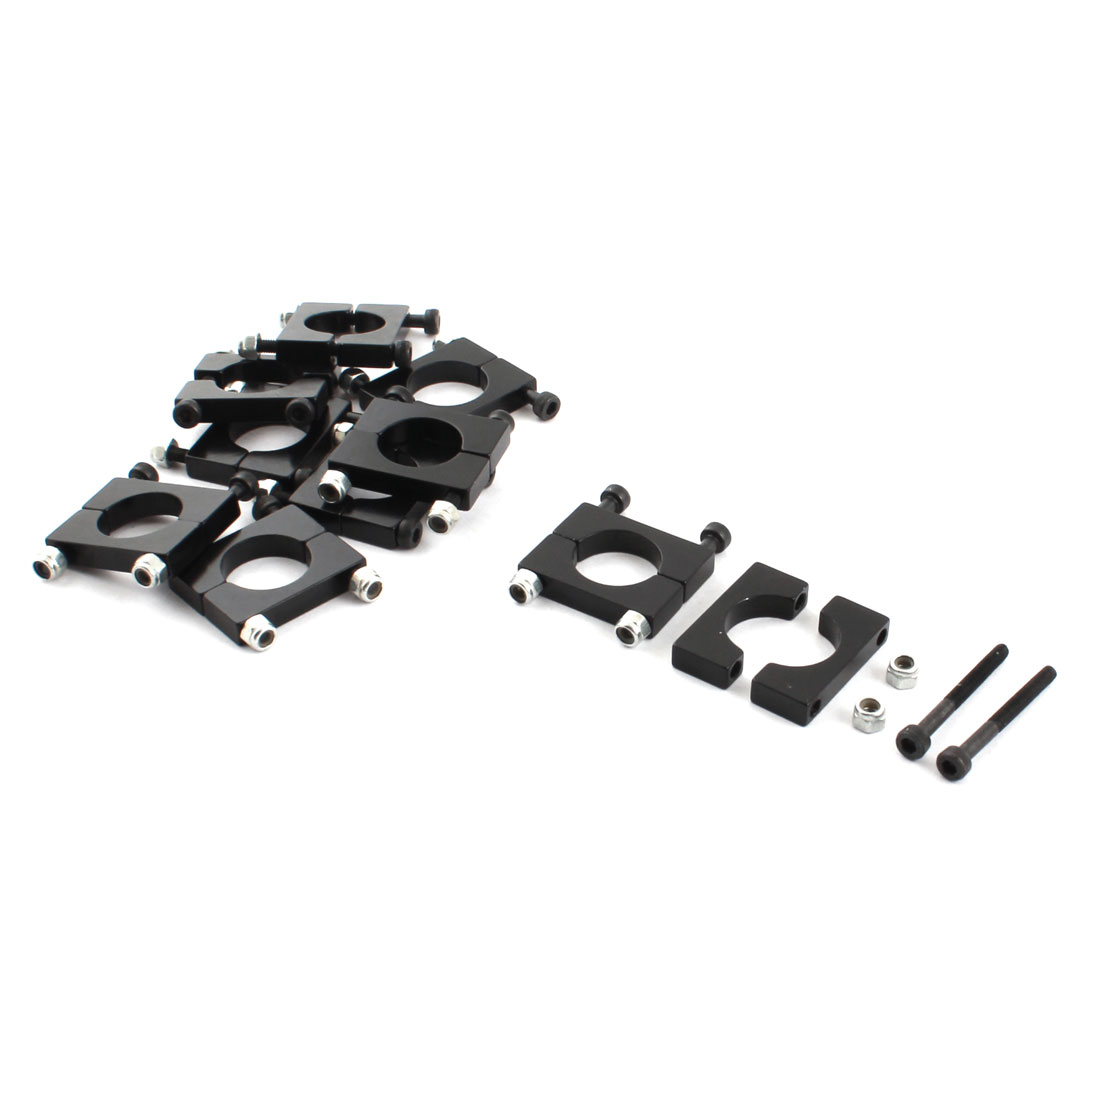 10Pcs 16mm Dia Black Aluminum Clamp Clip Fastener for Carbon Fiber Tube RC Quadcopter Hexrcopter